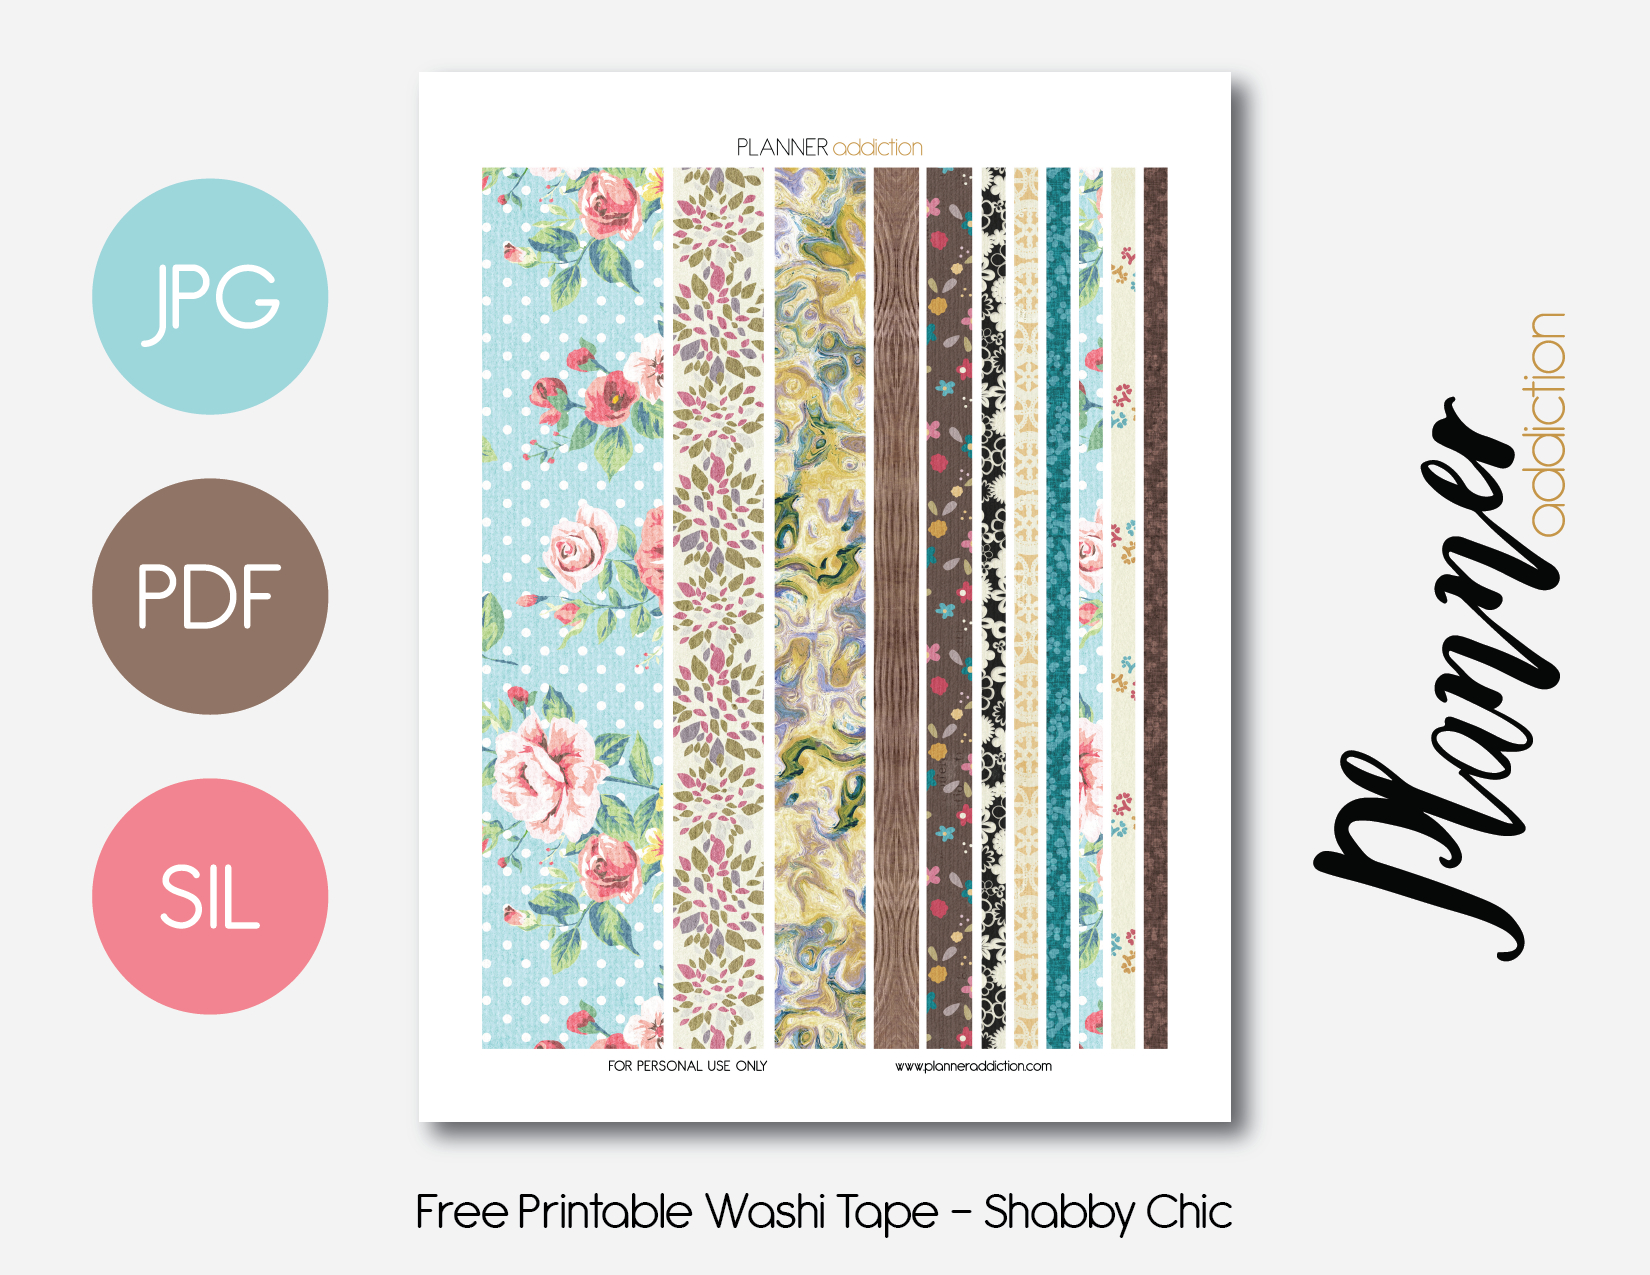 Free Printable Washi Tape – Planner Addiction - Free Printable Washi Tape